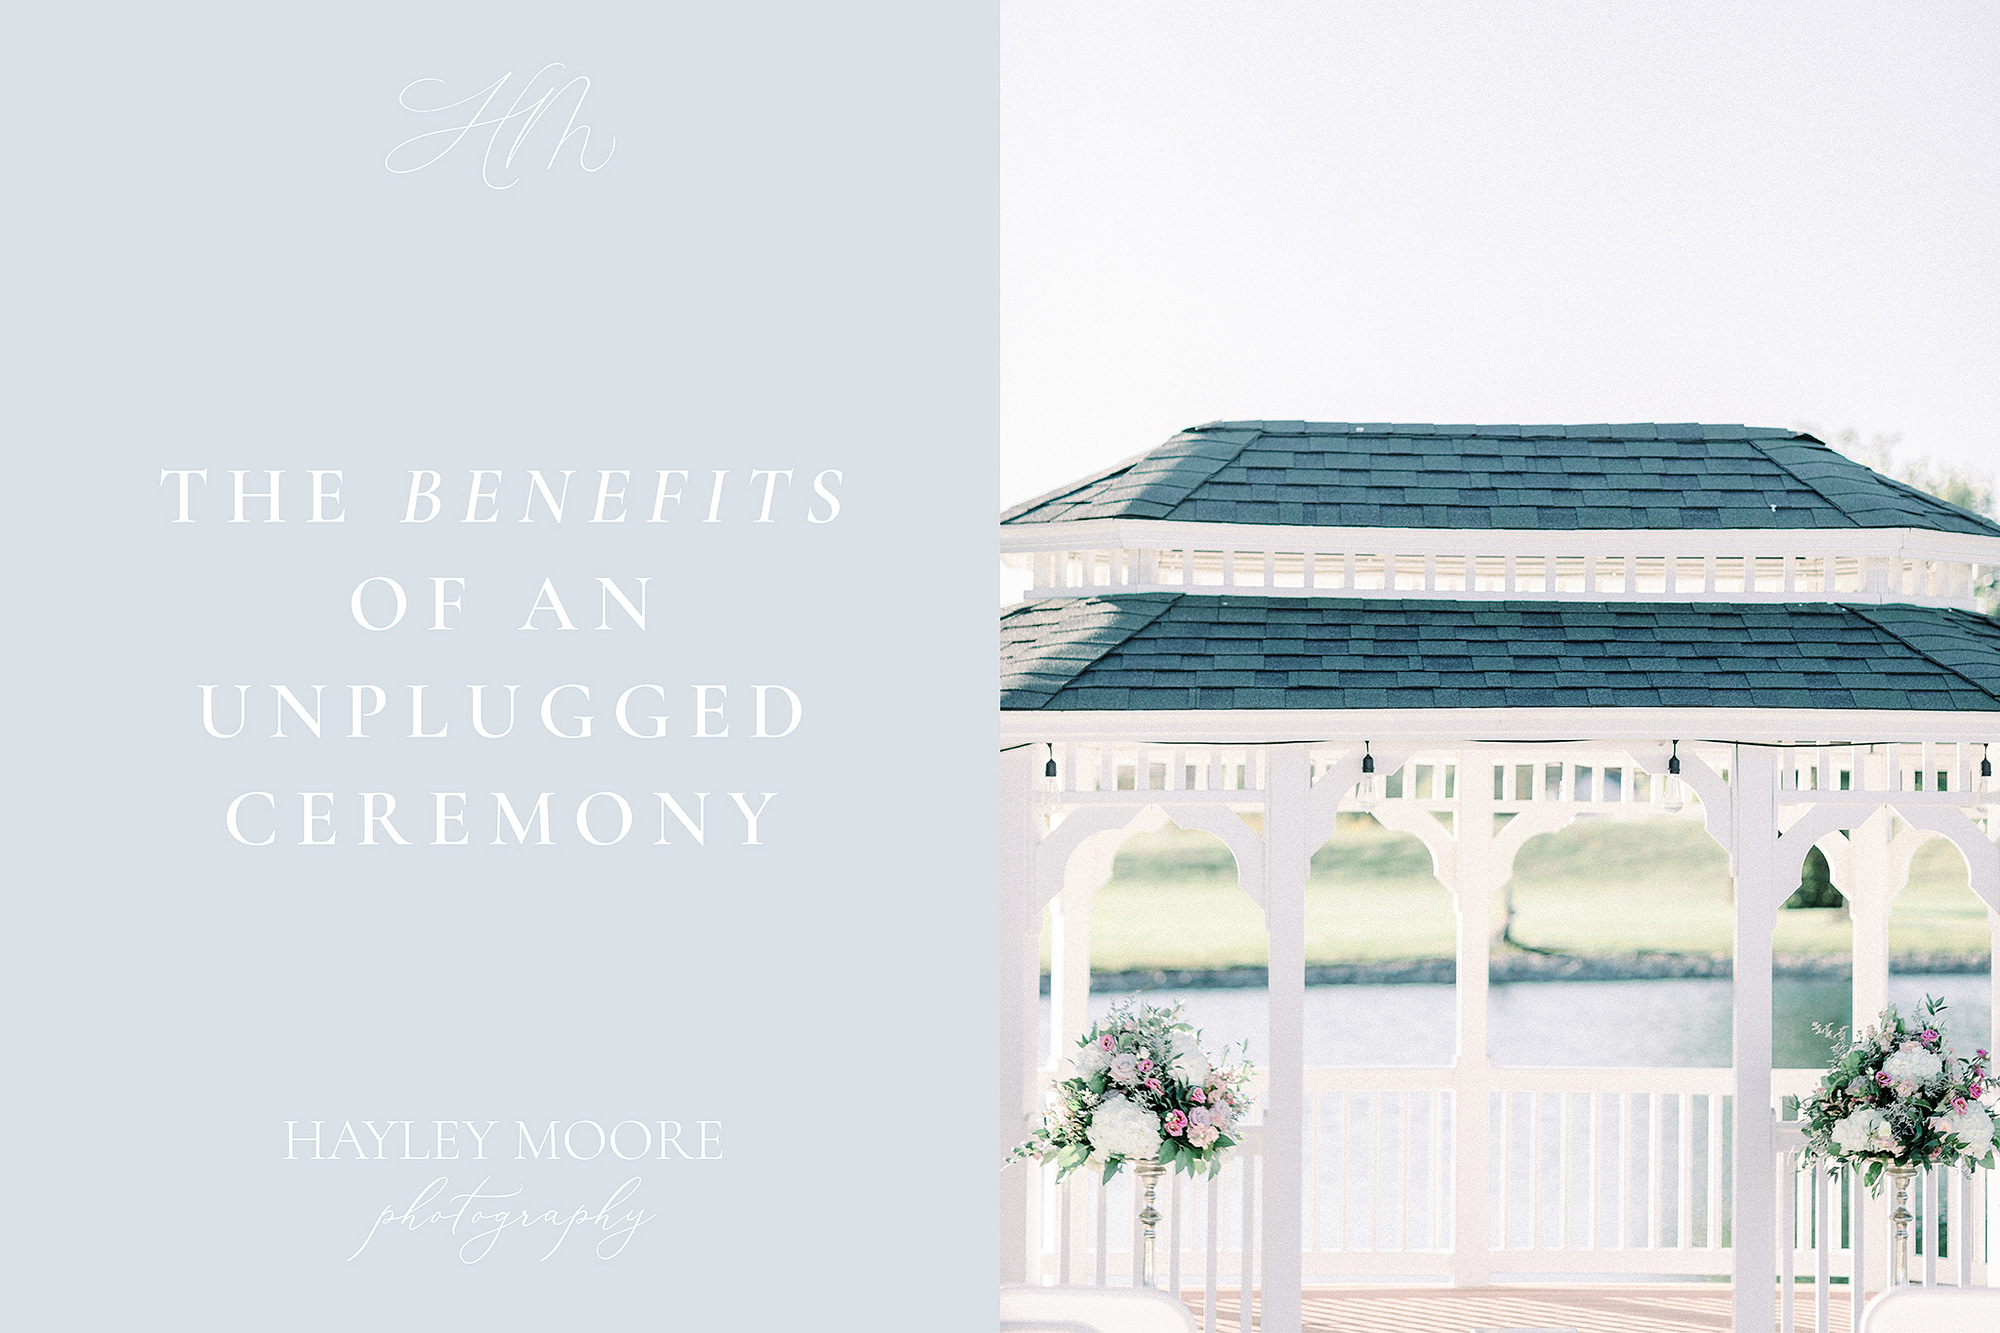 THE-BENEFITS-OF-AN-UNPLUGGED-CEREMONY-HAYLEY-MOORE-PHOTOGRAPHY